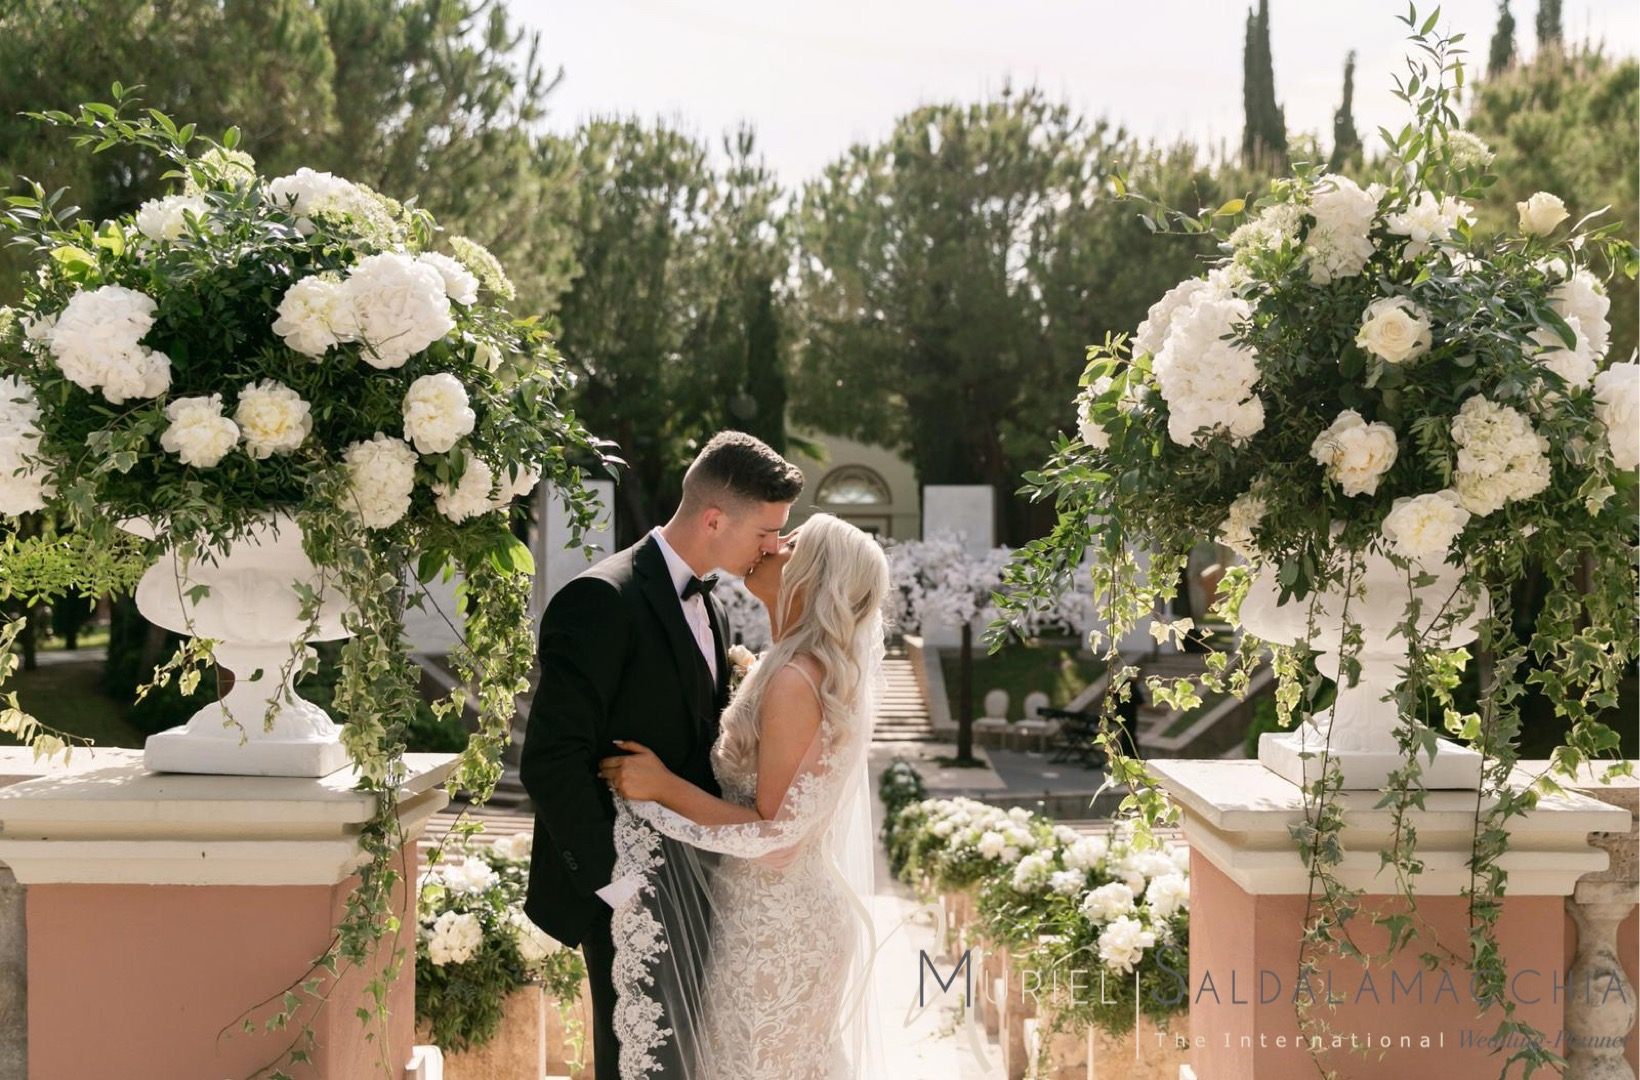 Glamorous wedding in Marbella